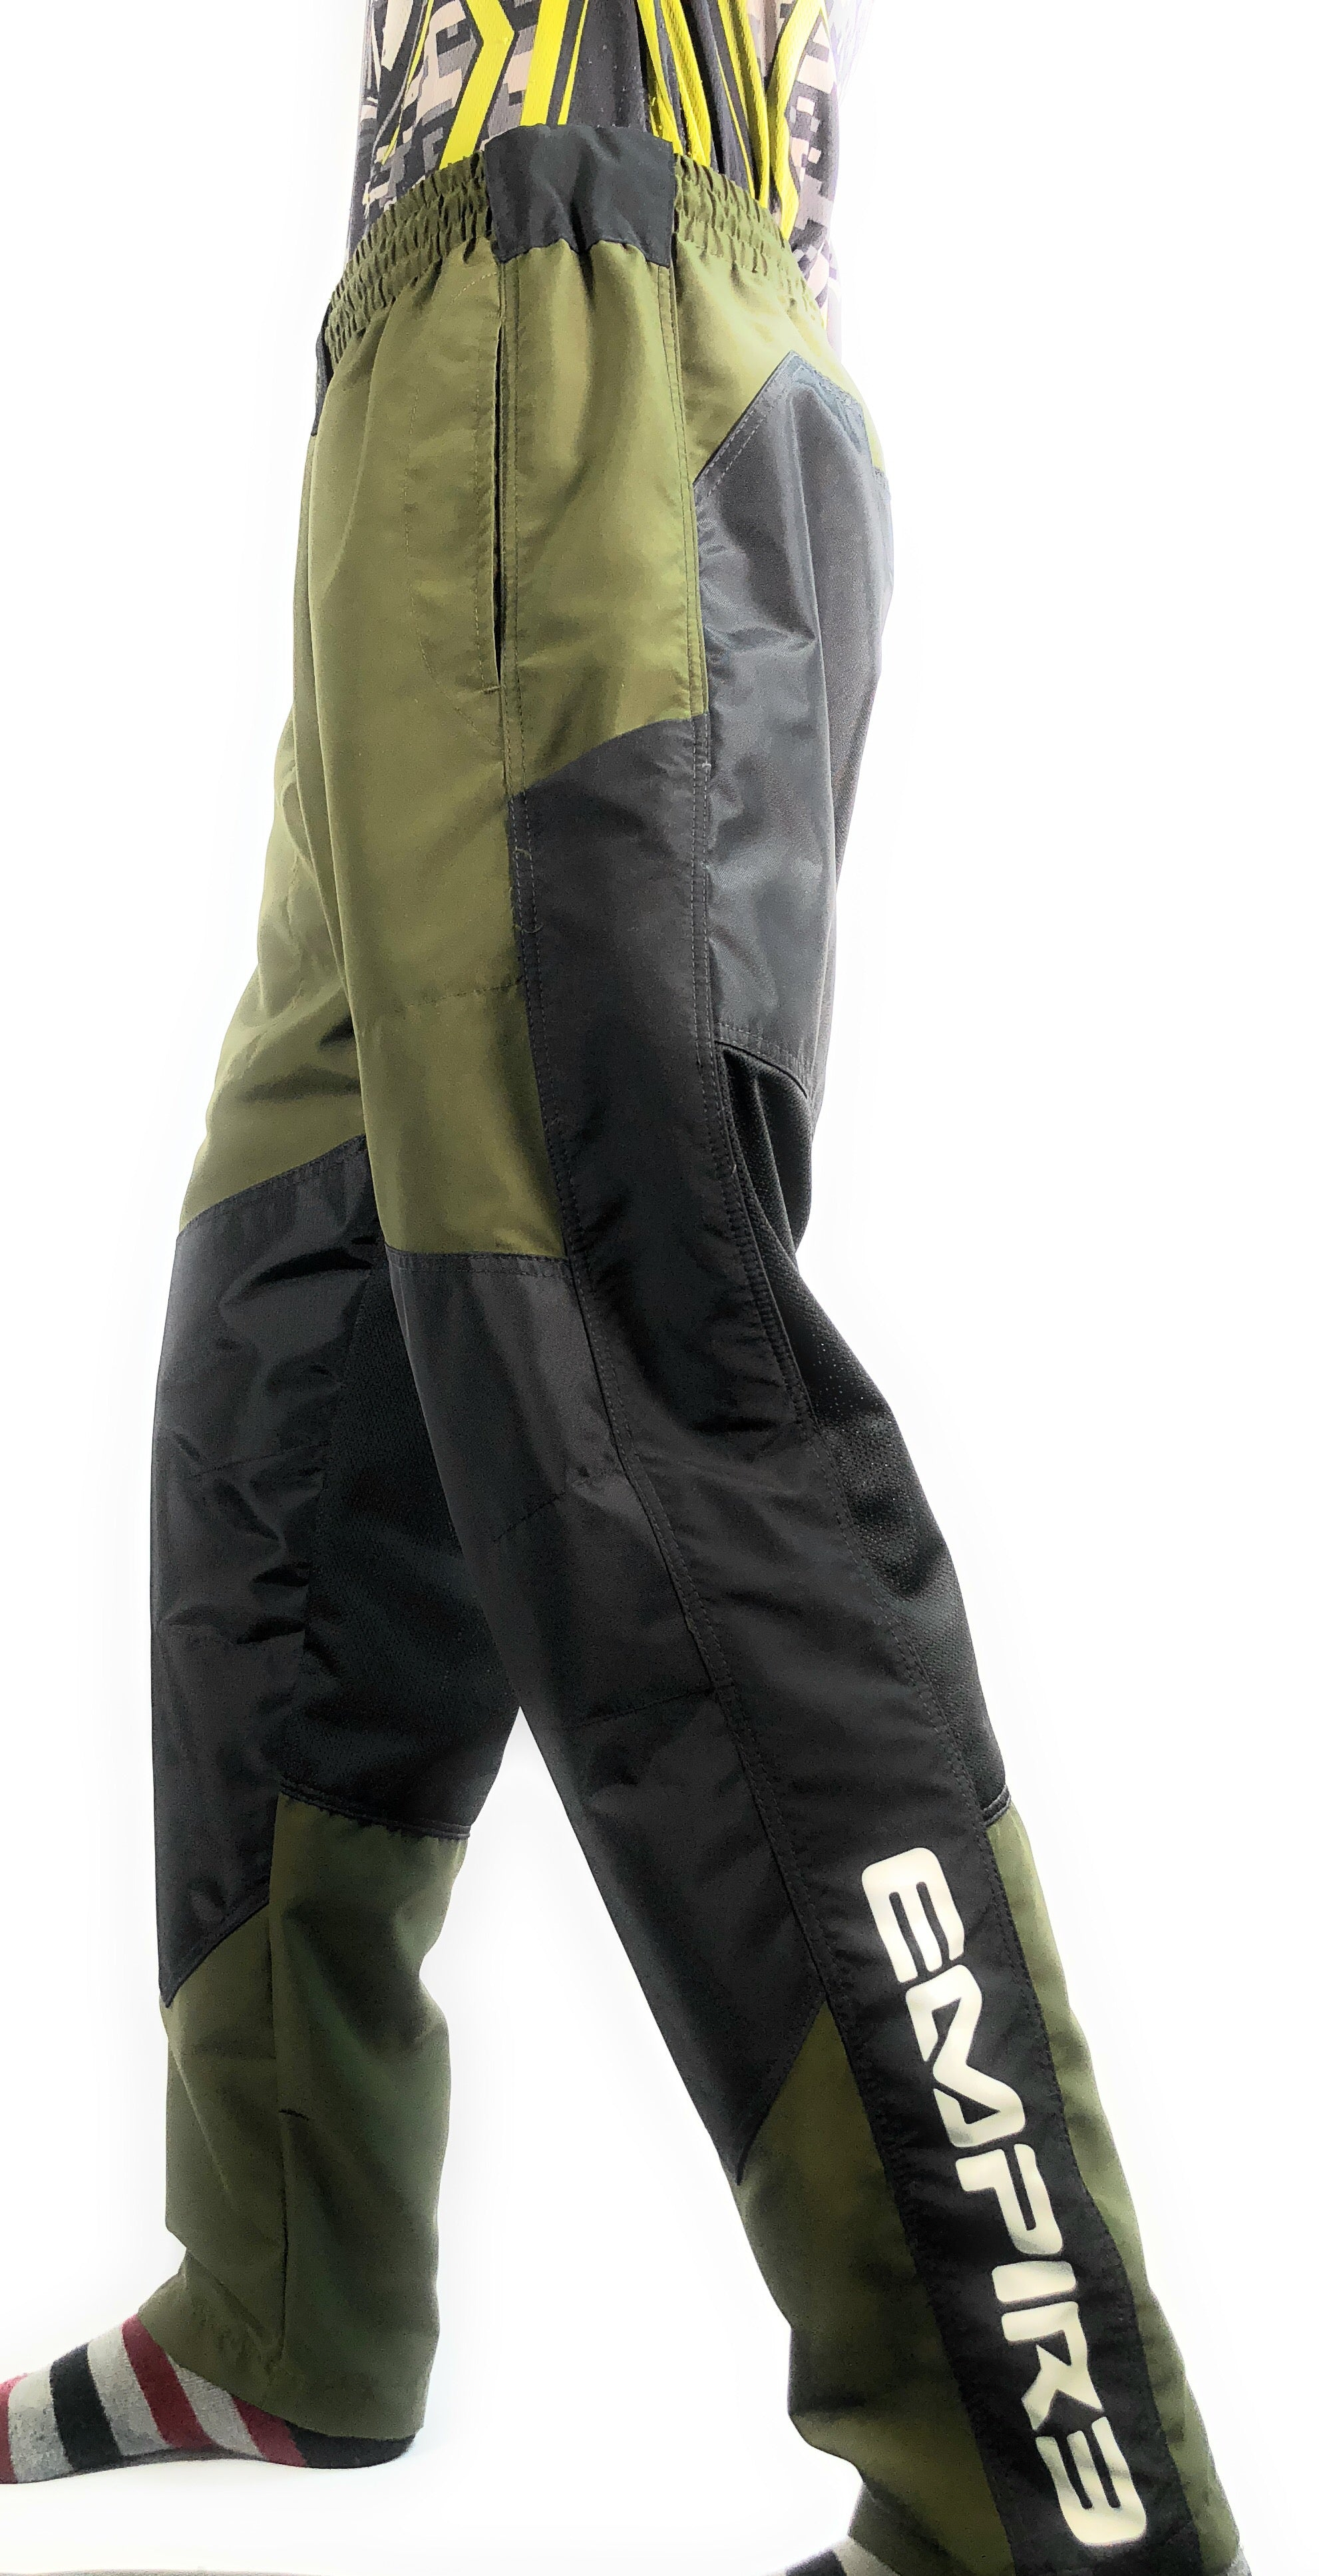 Photos of Empire Grind Pants - Olive - Large. Photo taken by drpaintball.com